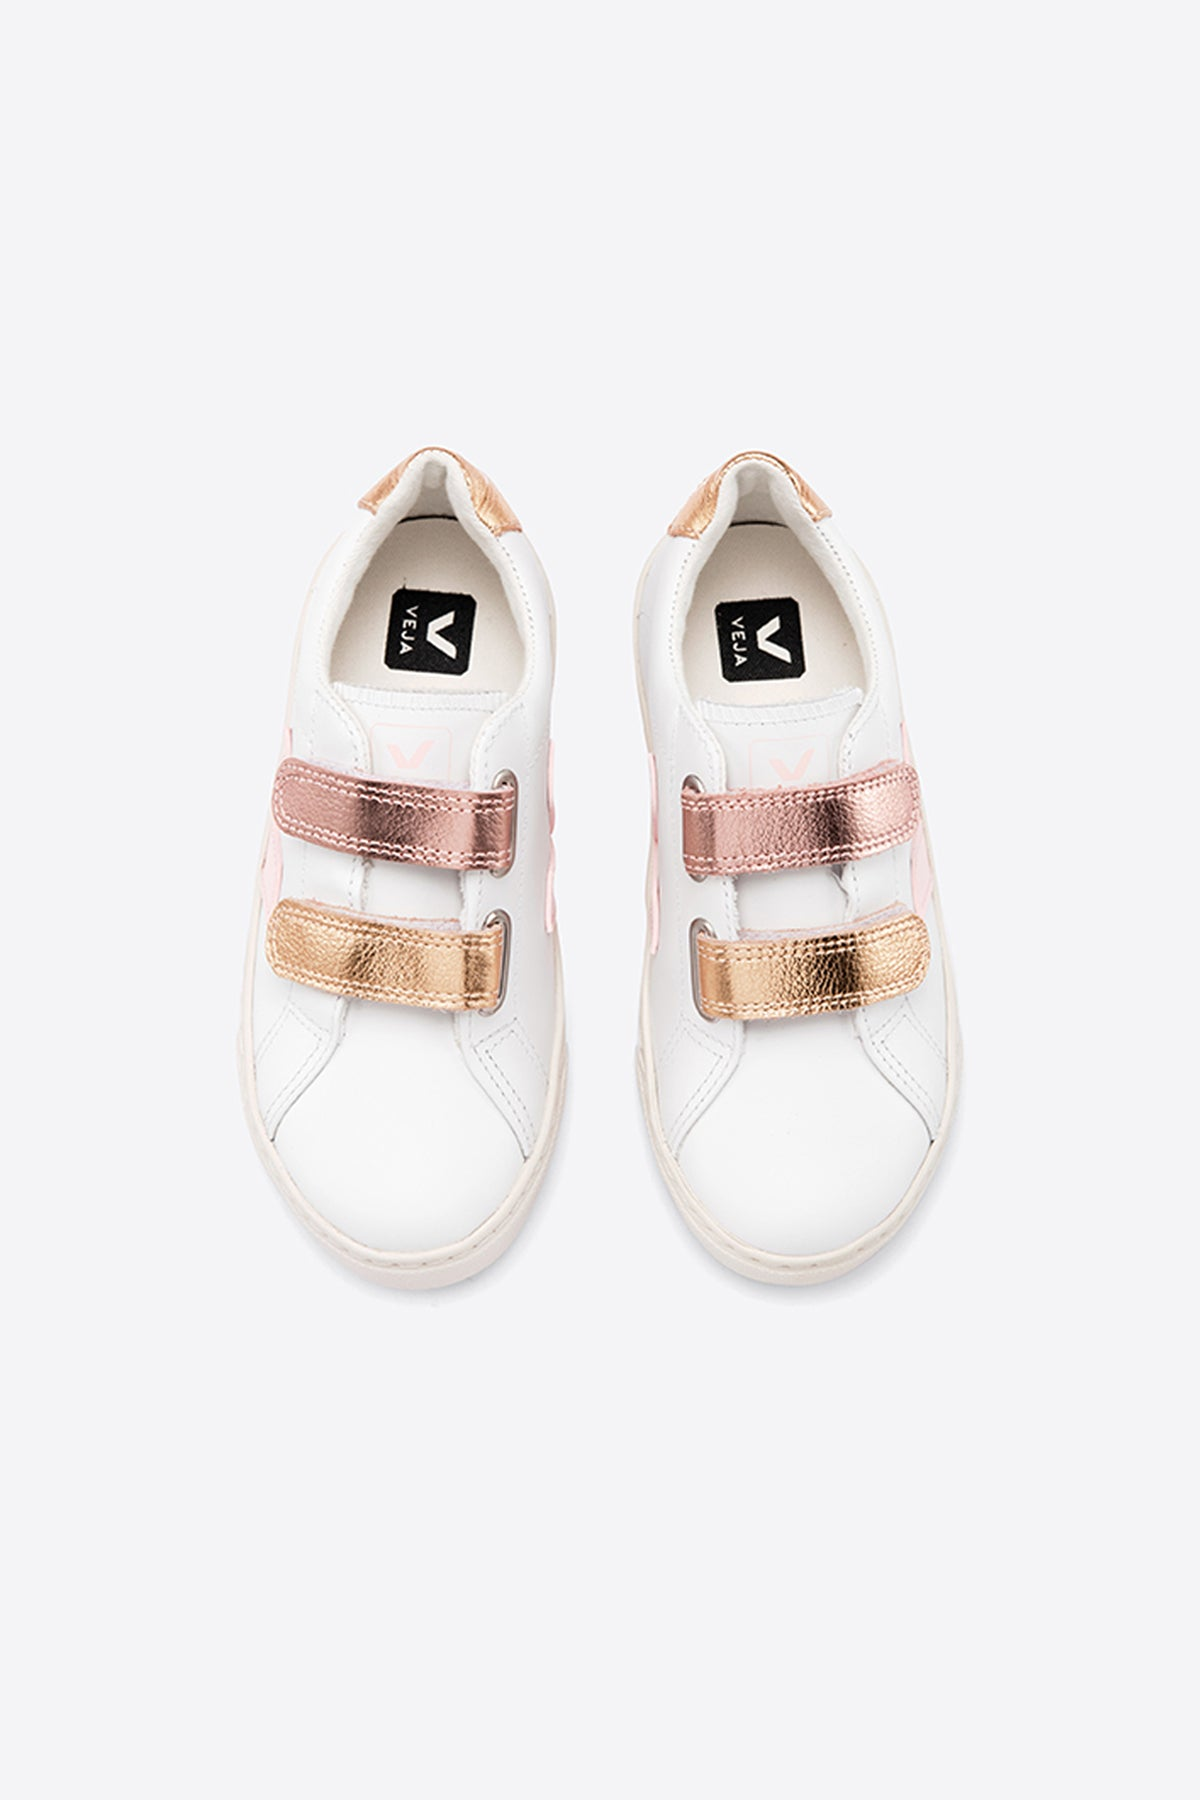 Veja Esplar Kids Shoes - White Petale Venus